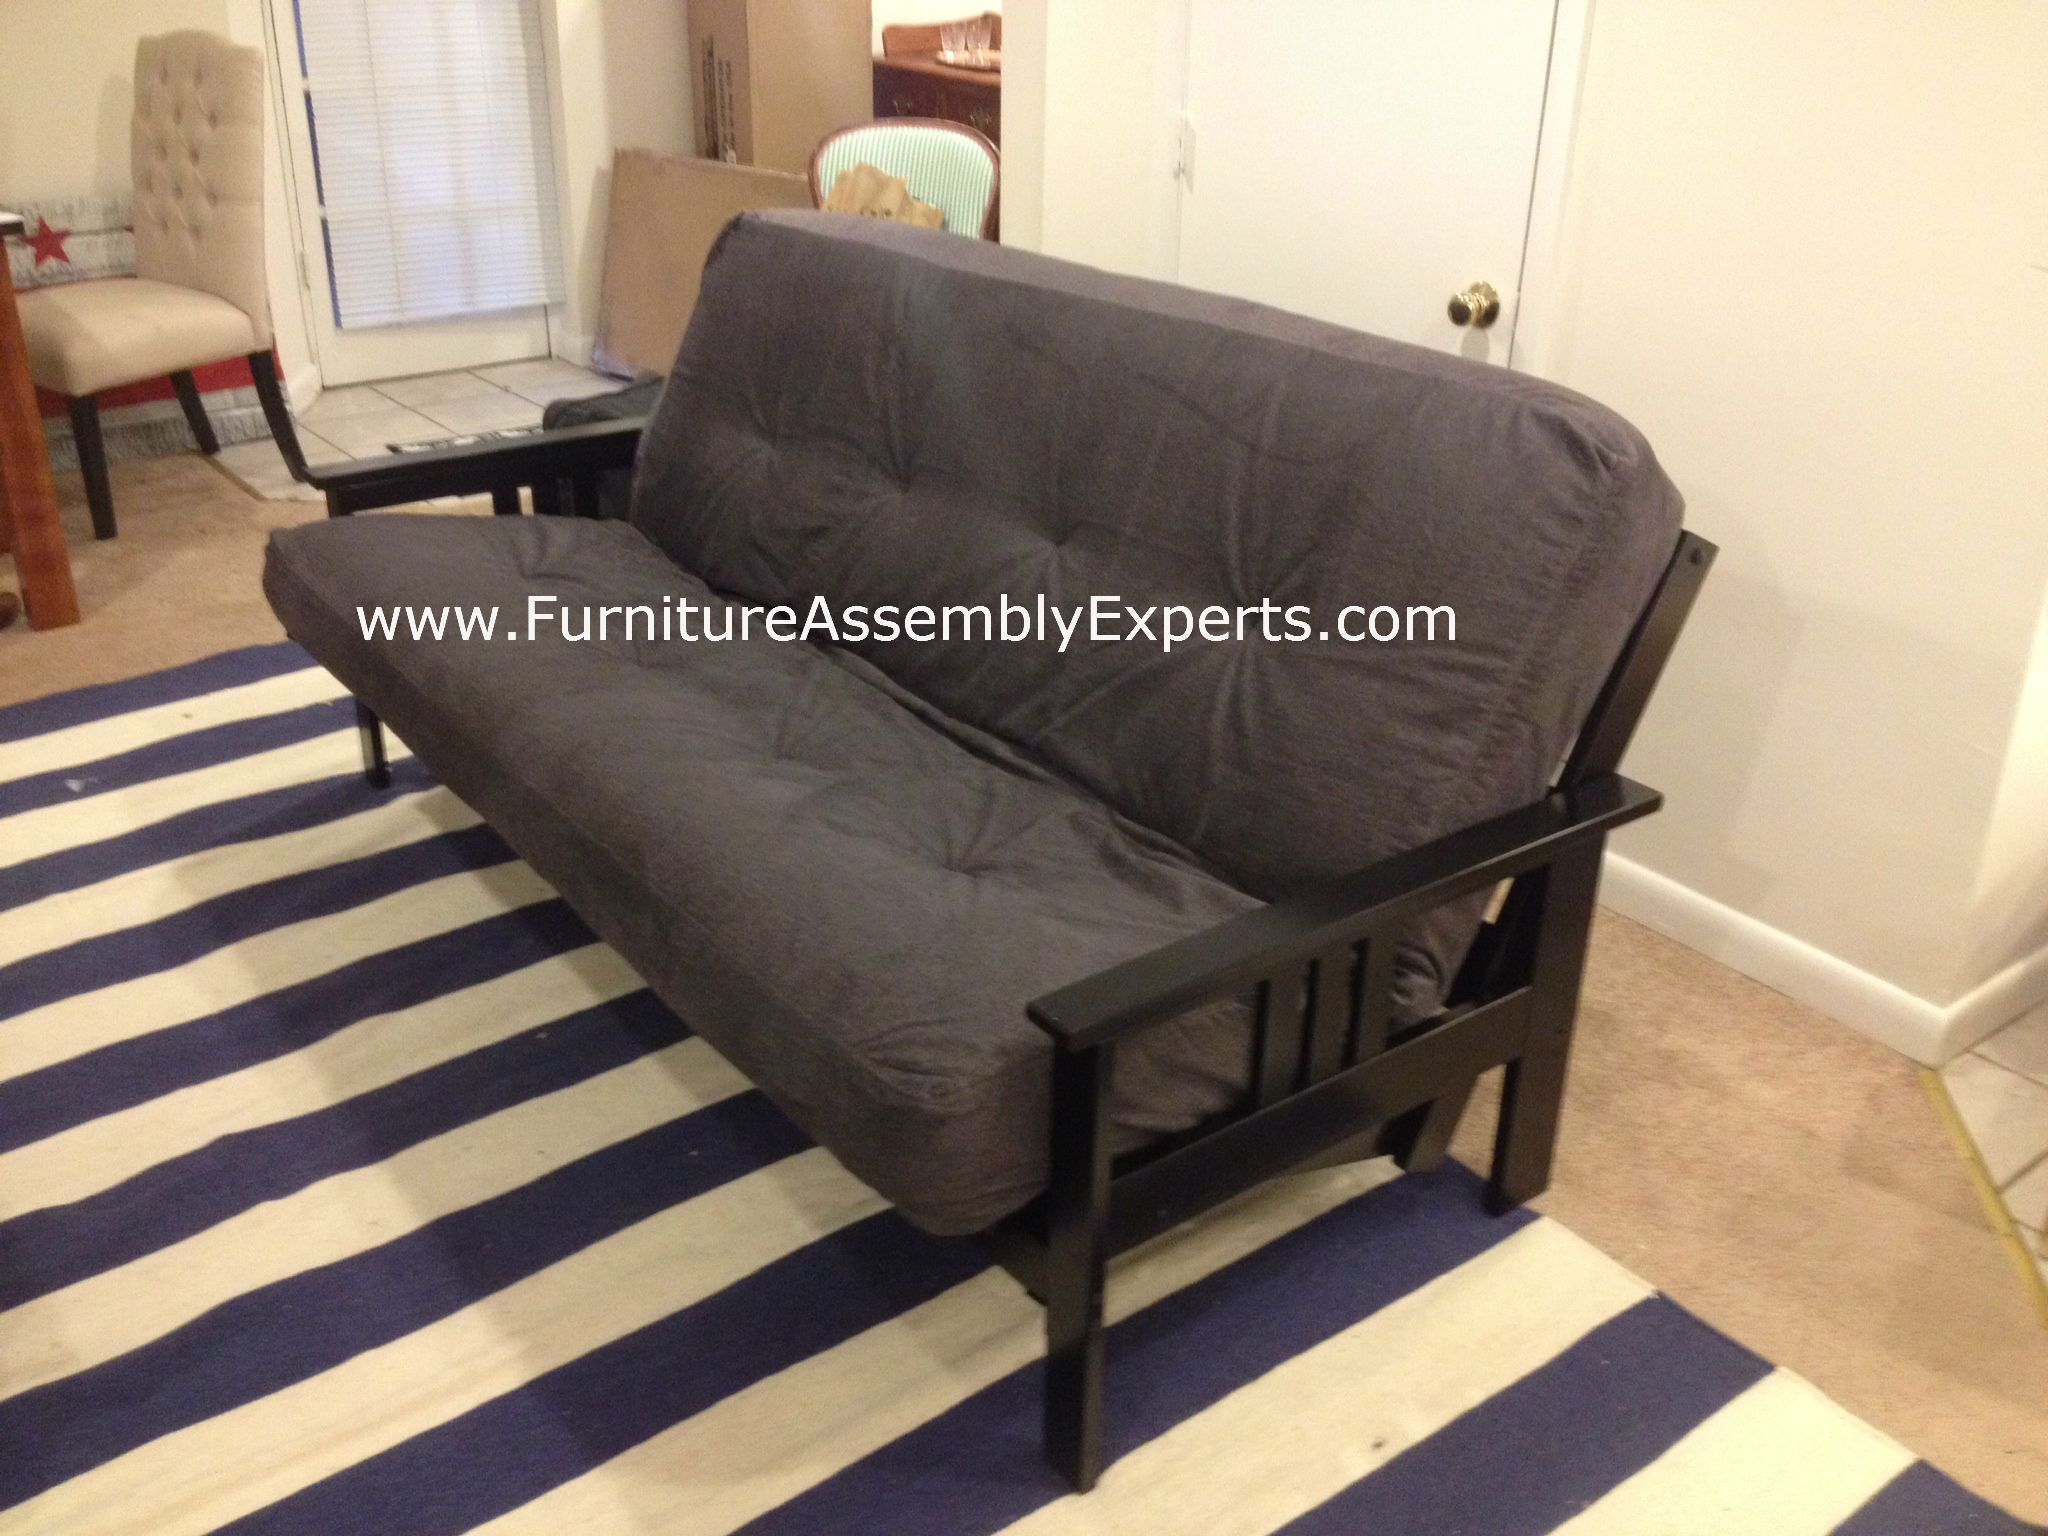 Costco Futon White Glove Embled In Washington Dc By Furniture Embly Experts Llc